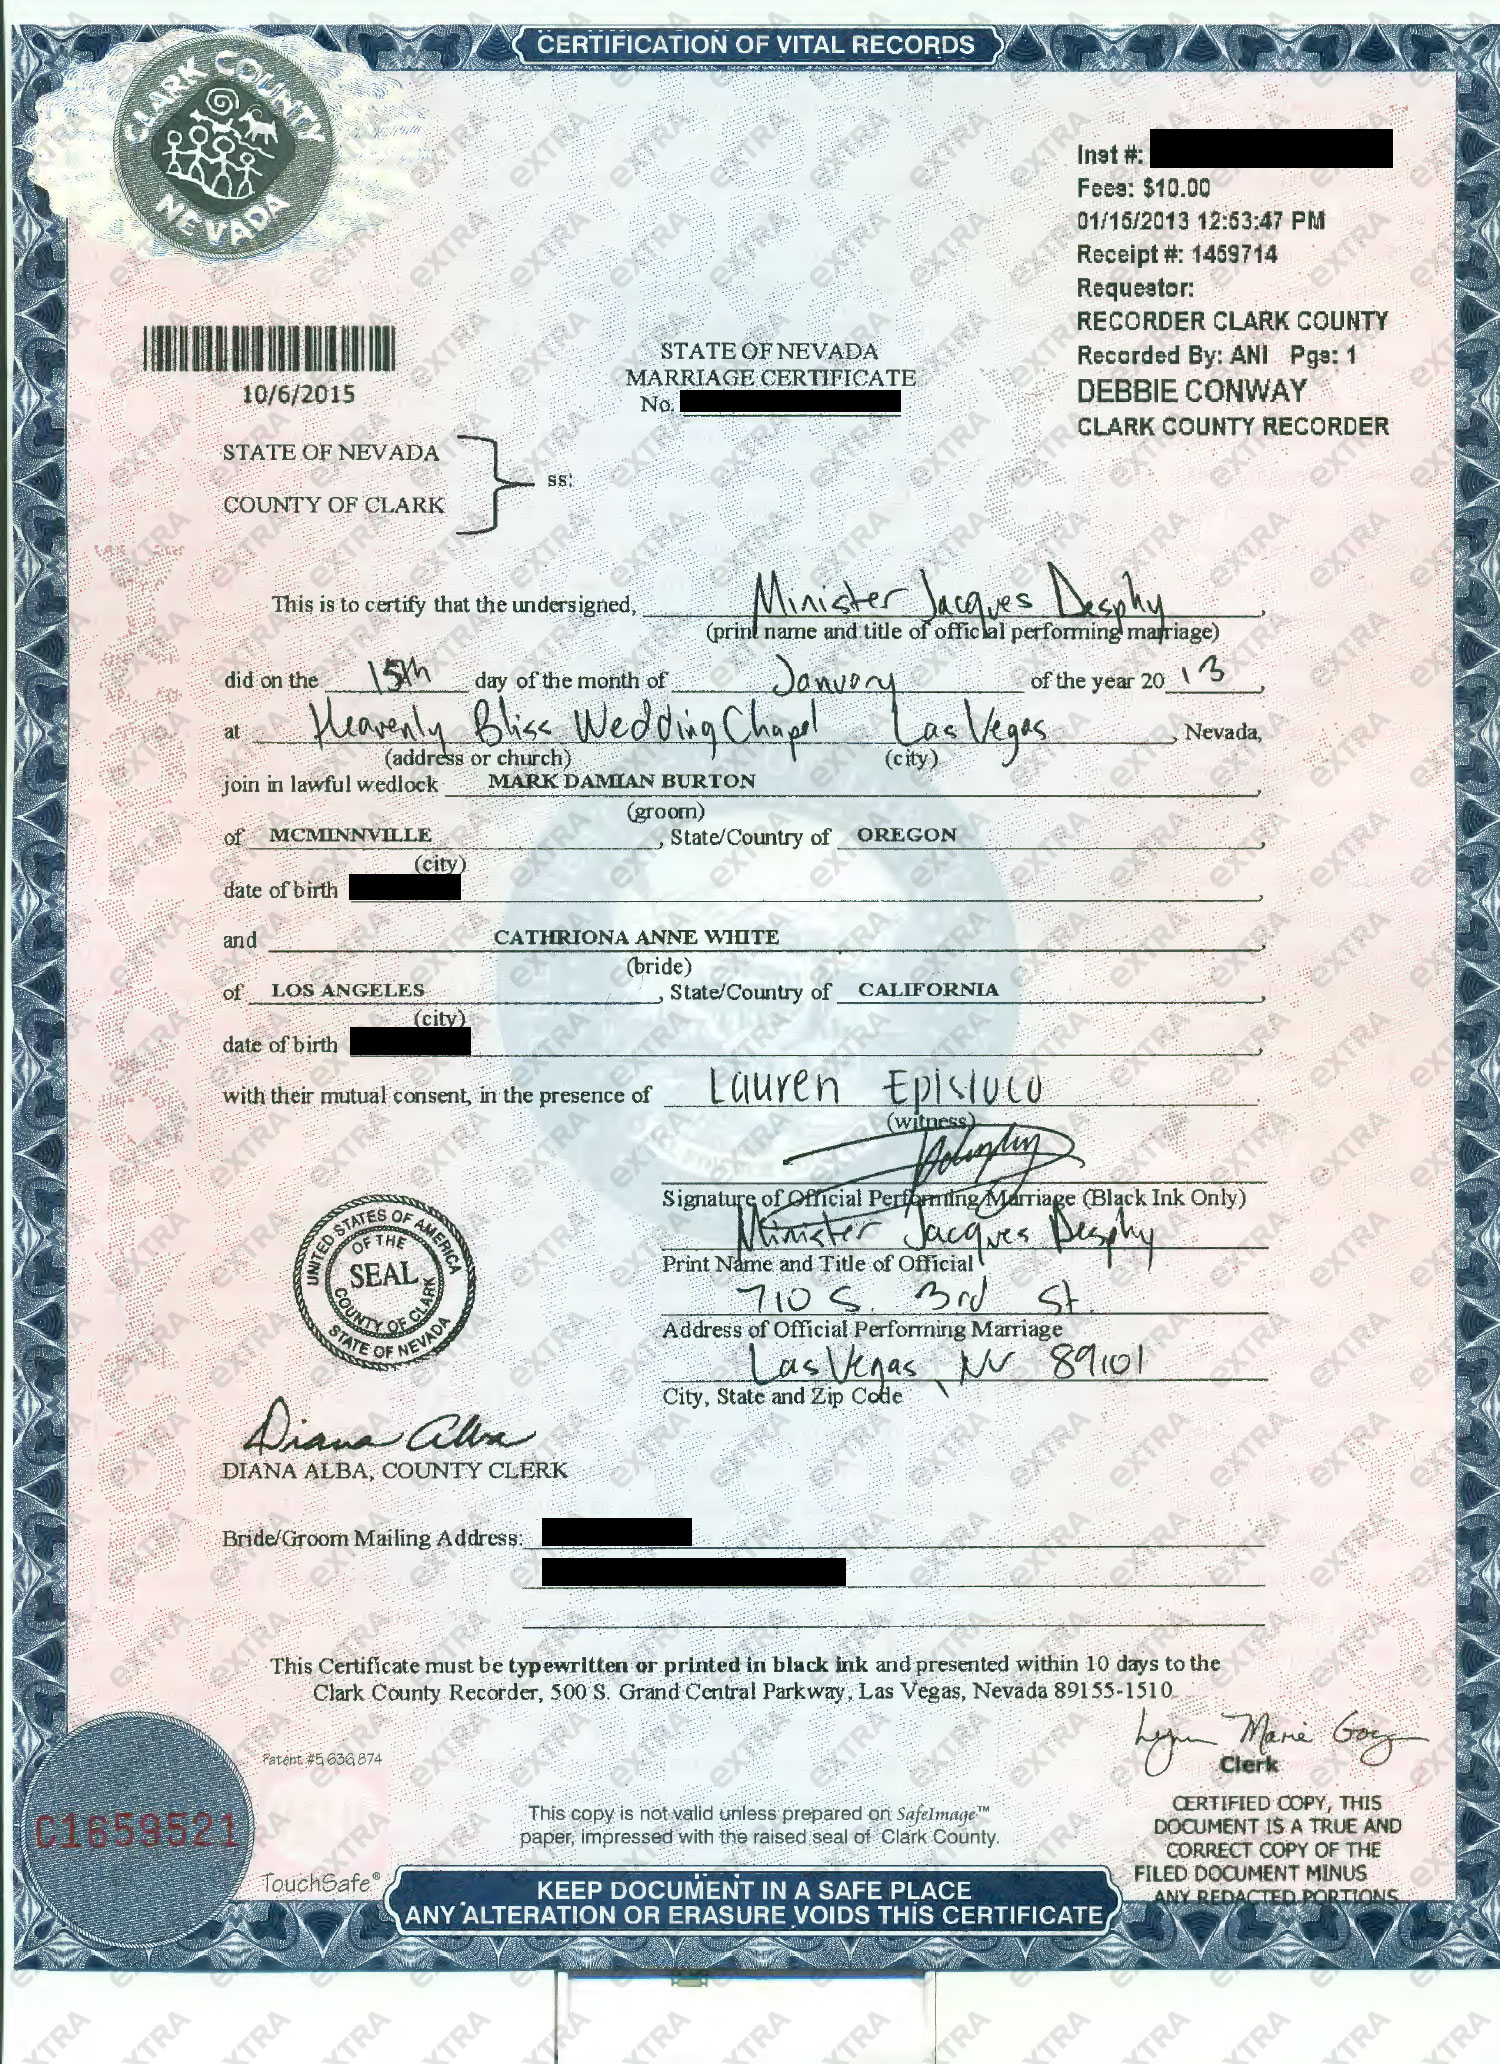 See The Marriage Certificate Here